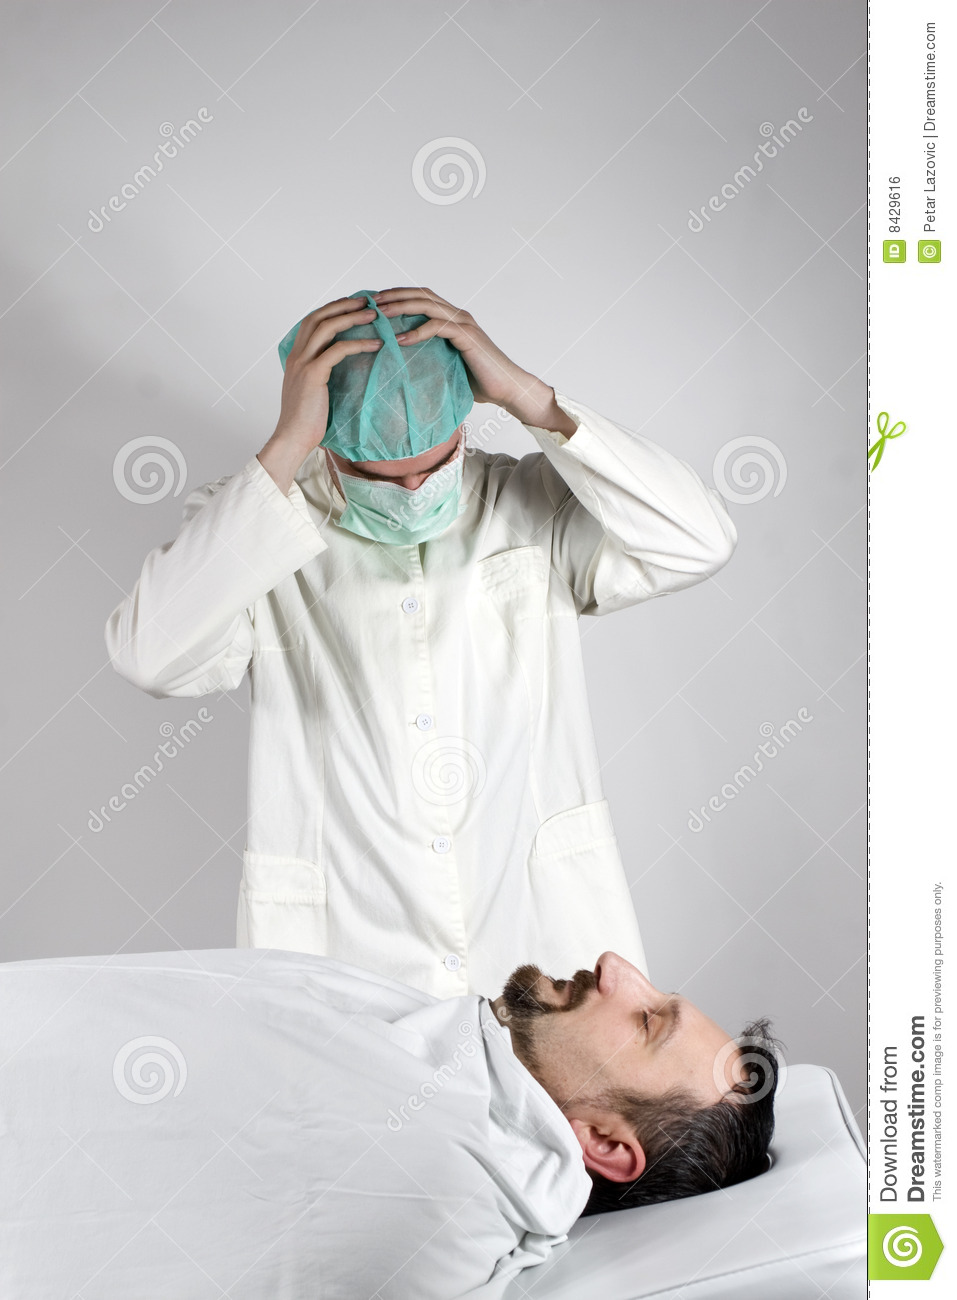 Patient suddenly died